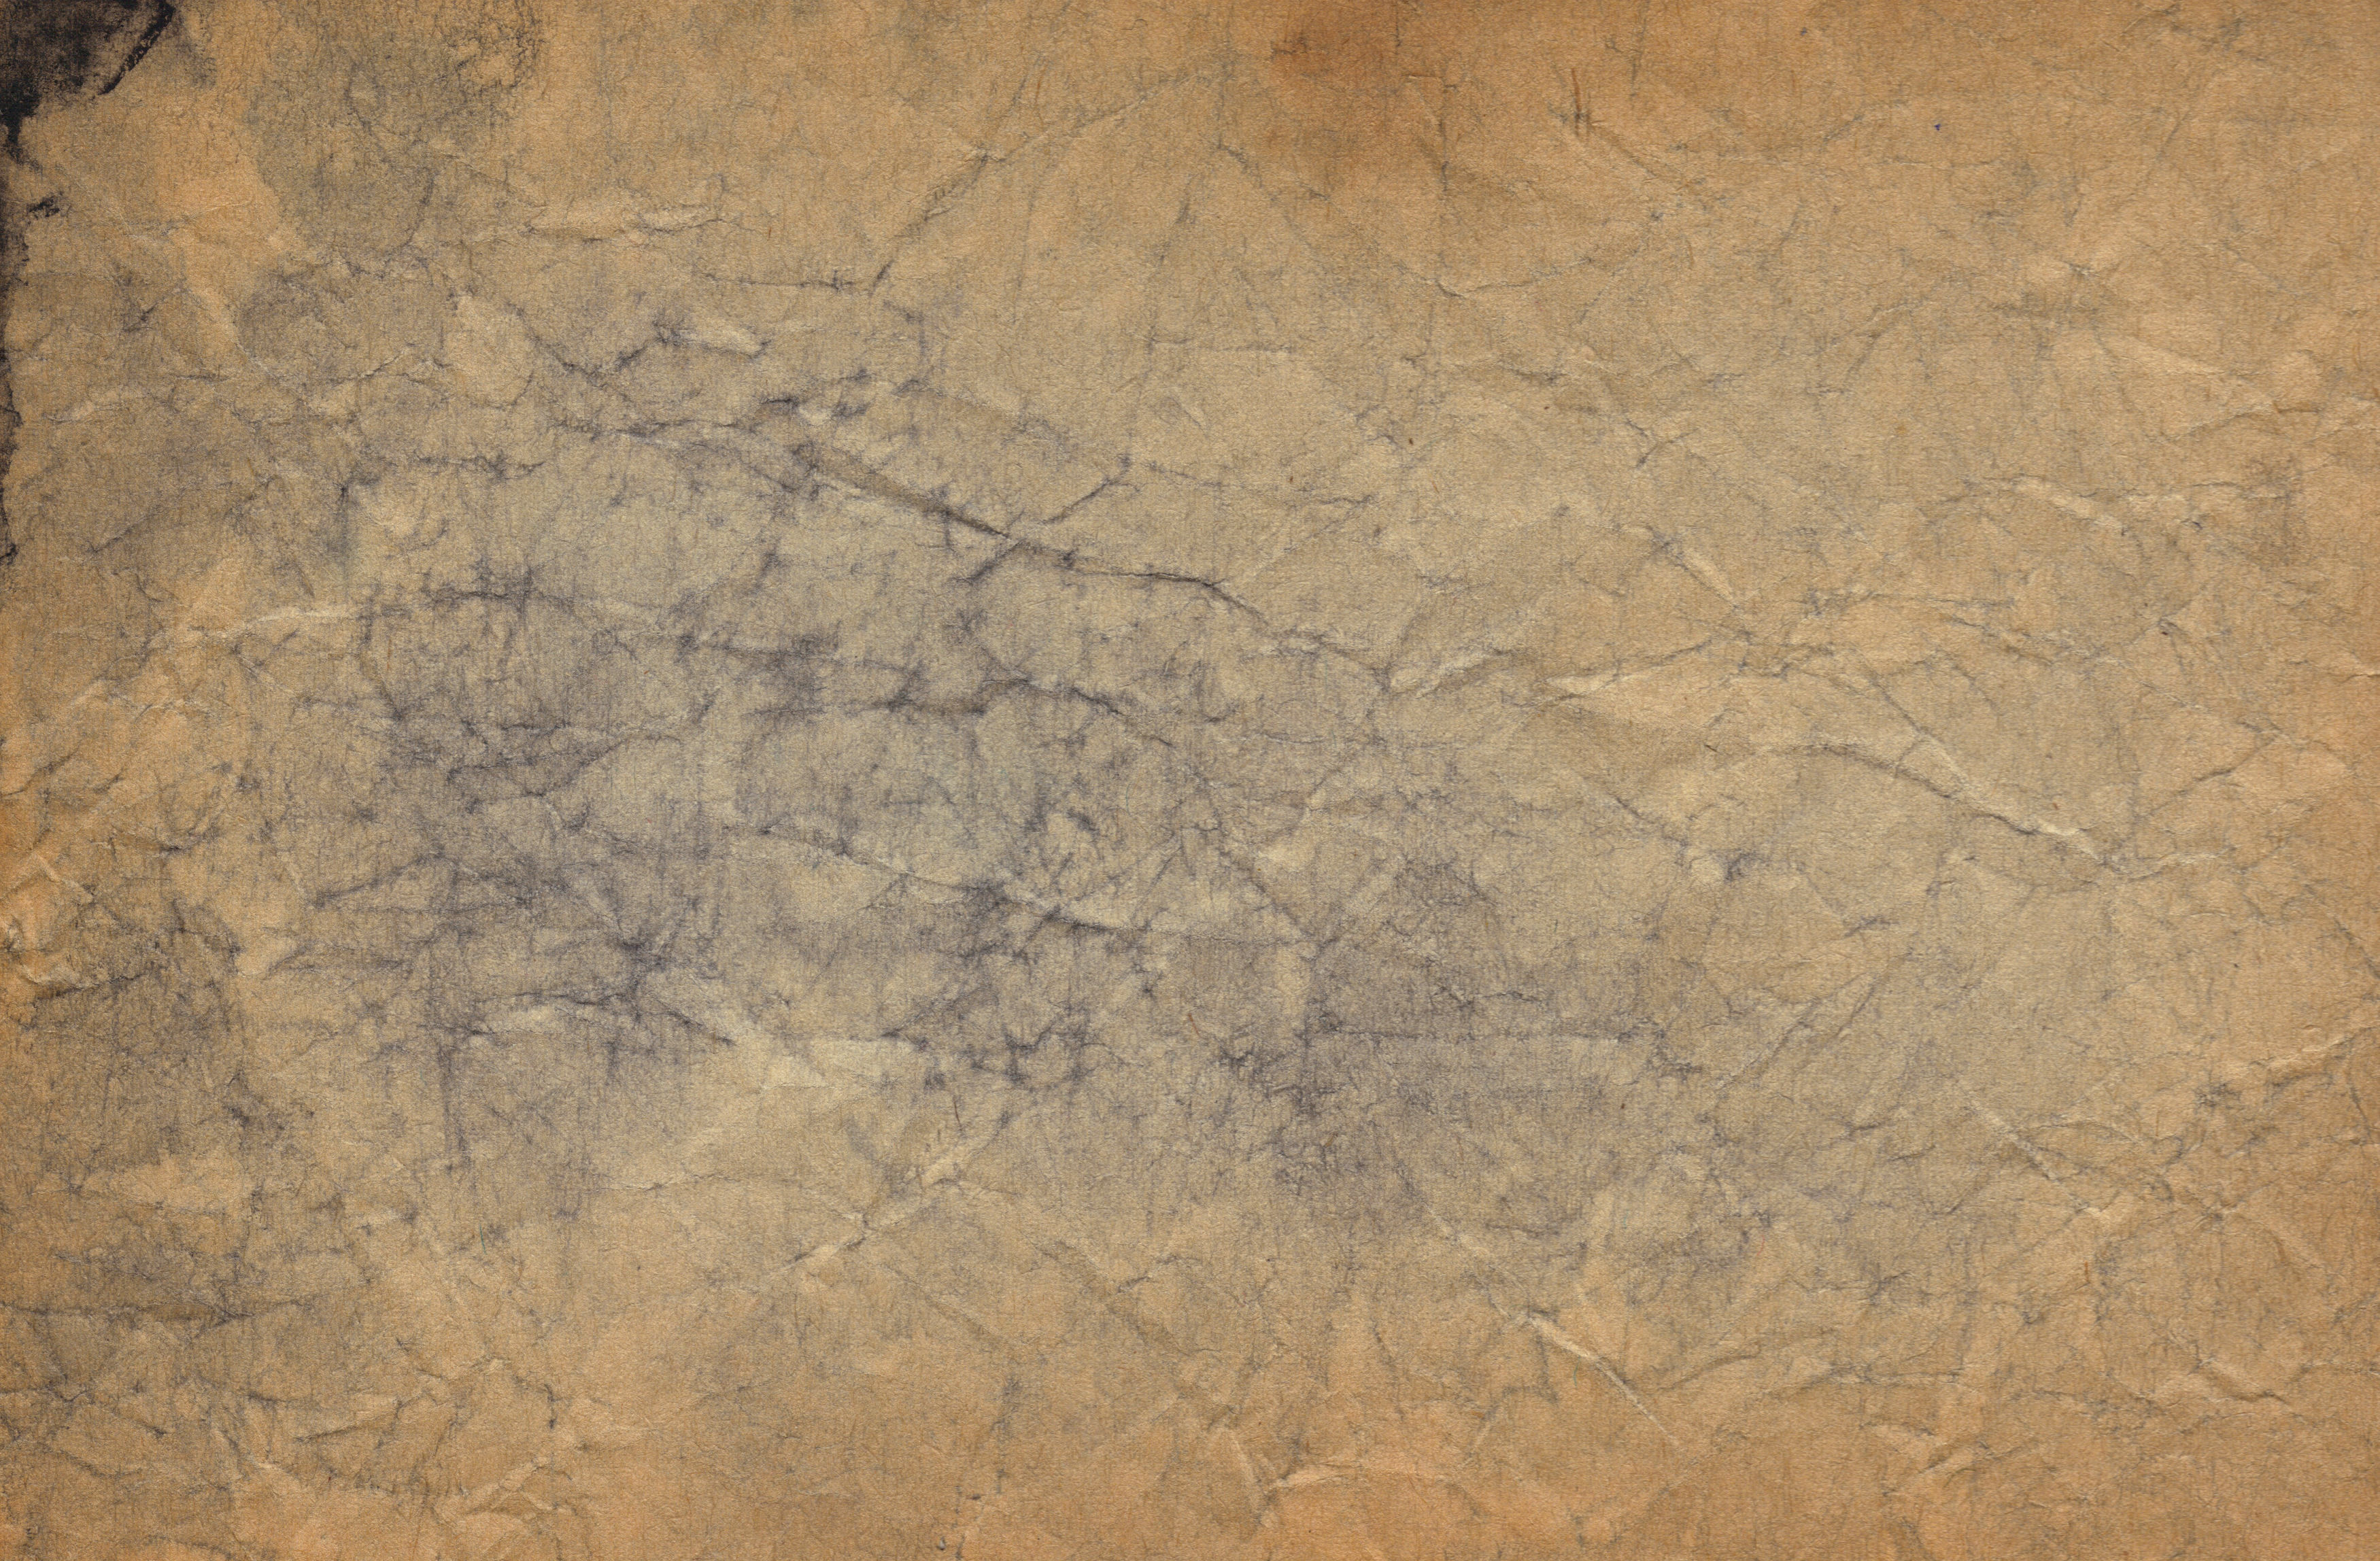 6 Grungy Dirty Vintage Old Paper Texture Jpg Onlygfx Com